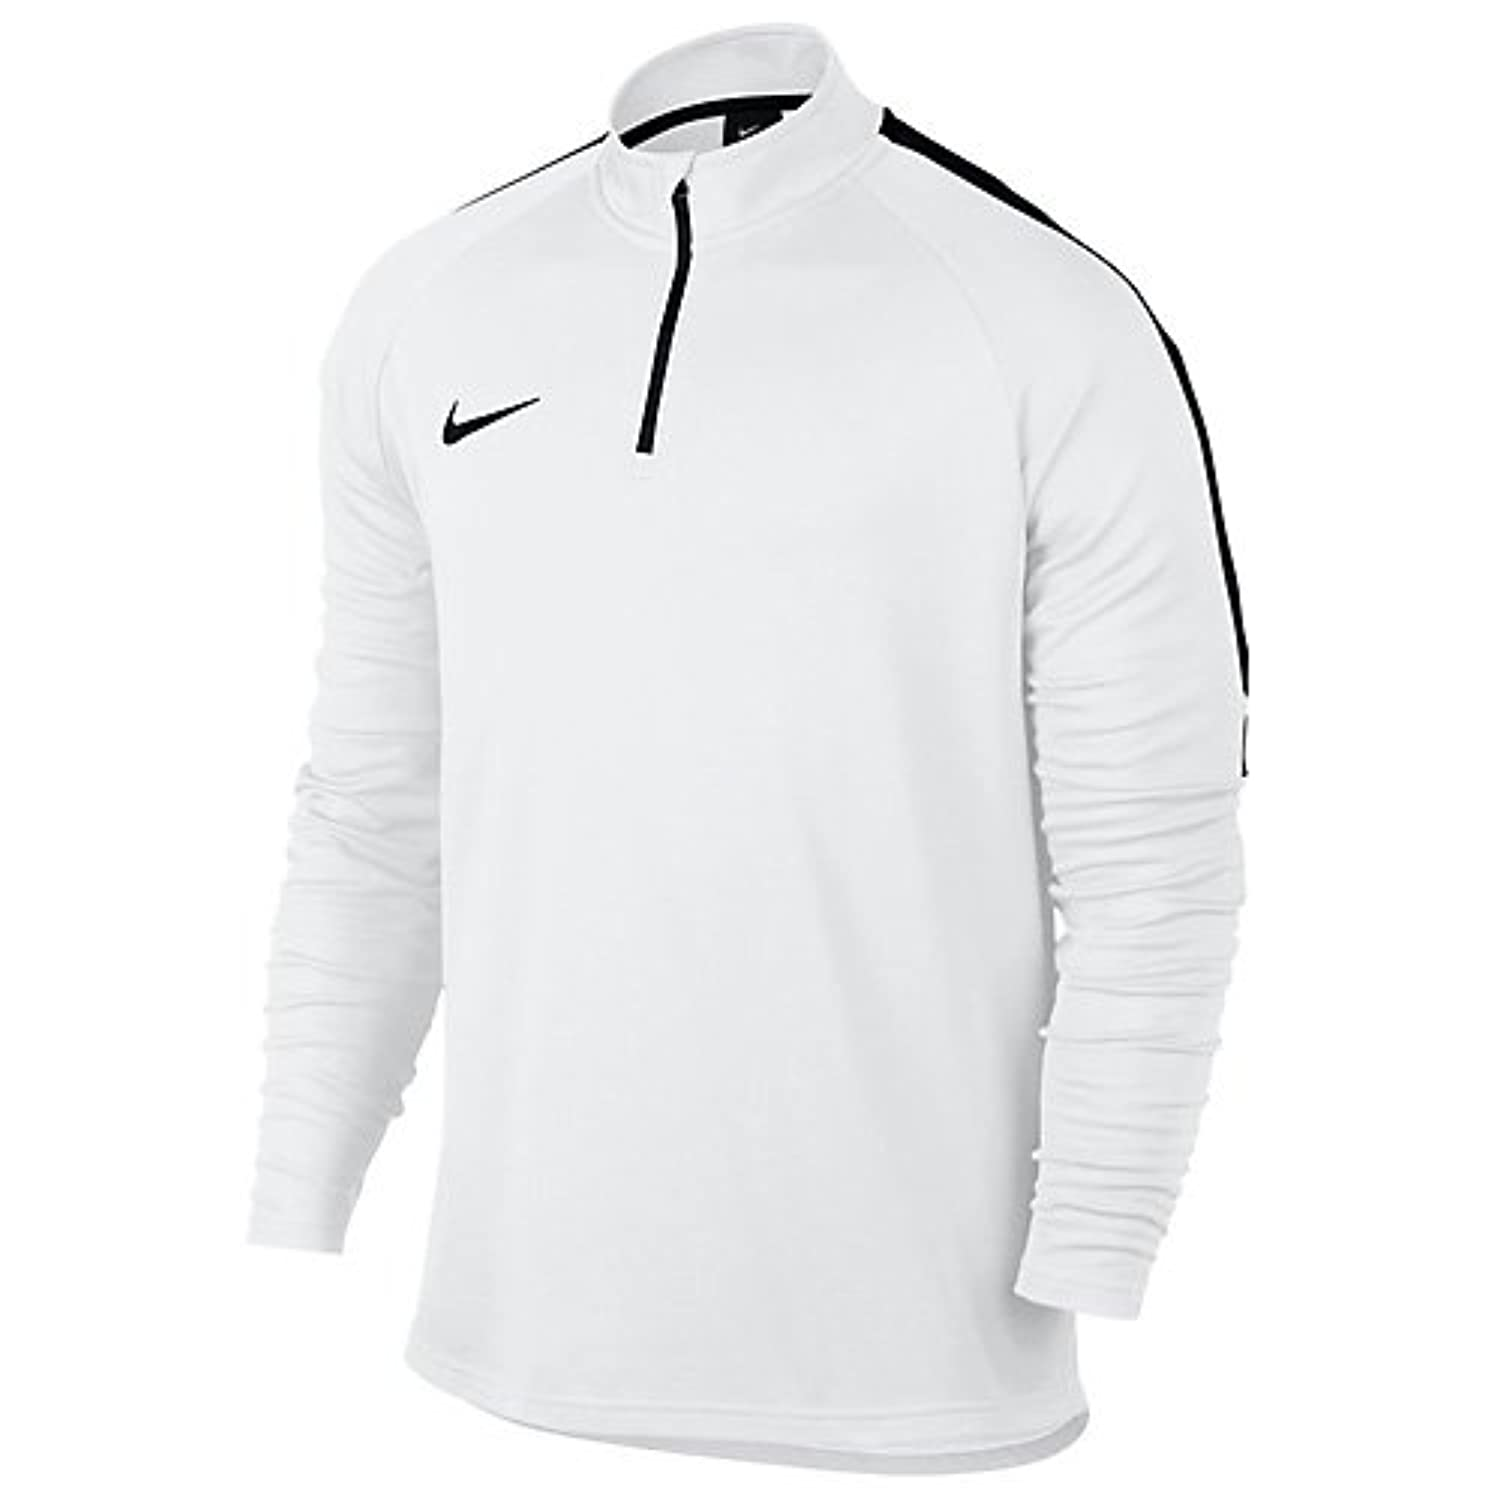 Acdmy Dry Nike Homme Justaucorps Drell Manches Longues Agrave  0q4A6qR d8a2418cb4f